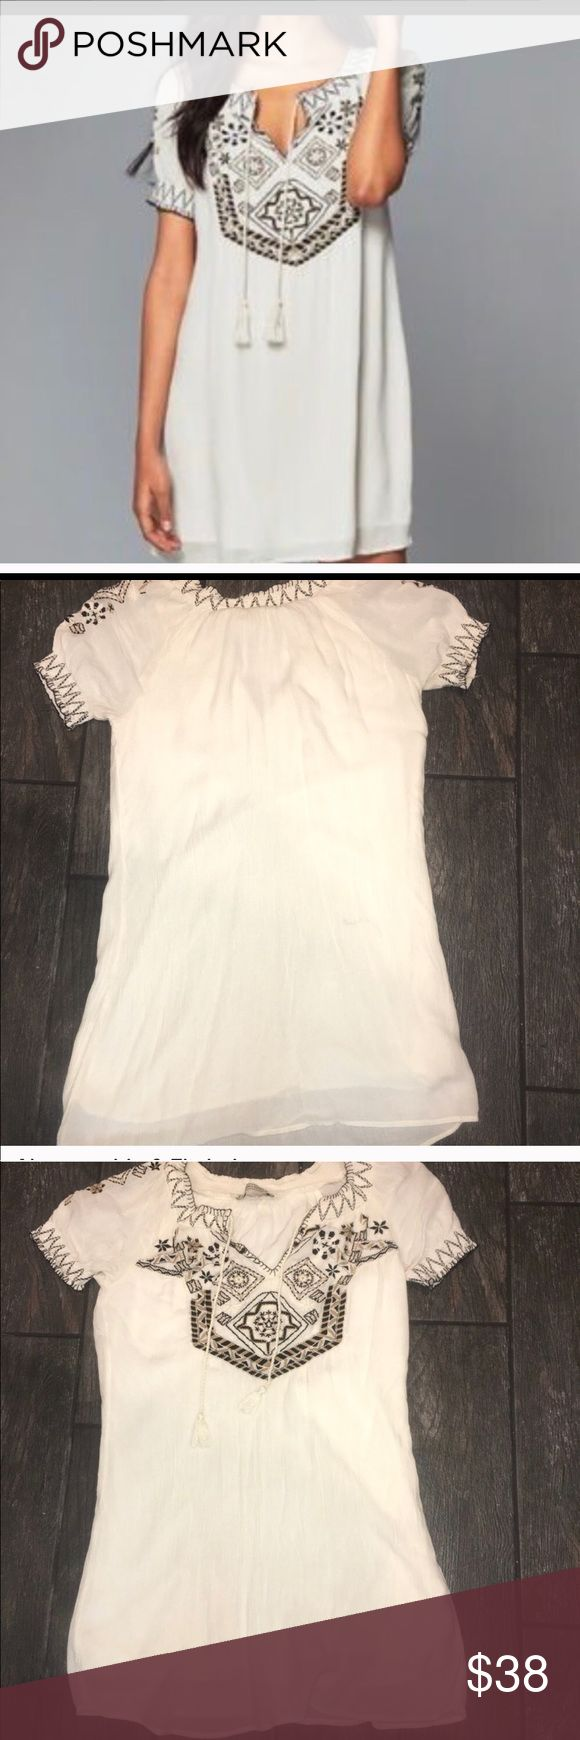 Abercrombie and Fitch Dress Abercrombie and Fitch embroidered dress in great pre-owned condition. Worn once. Abercrombie & Fitch Dresses